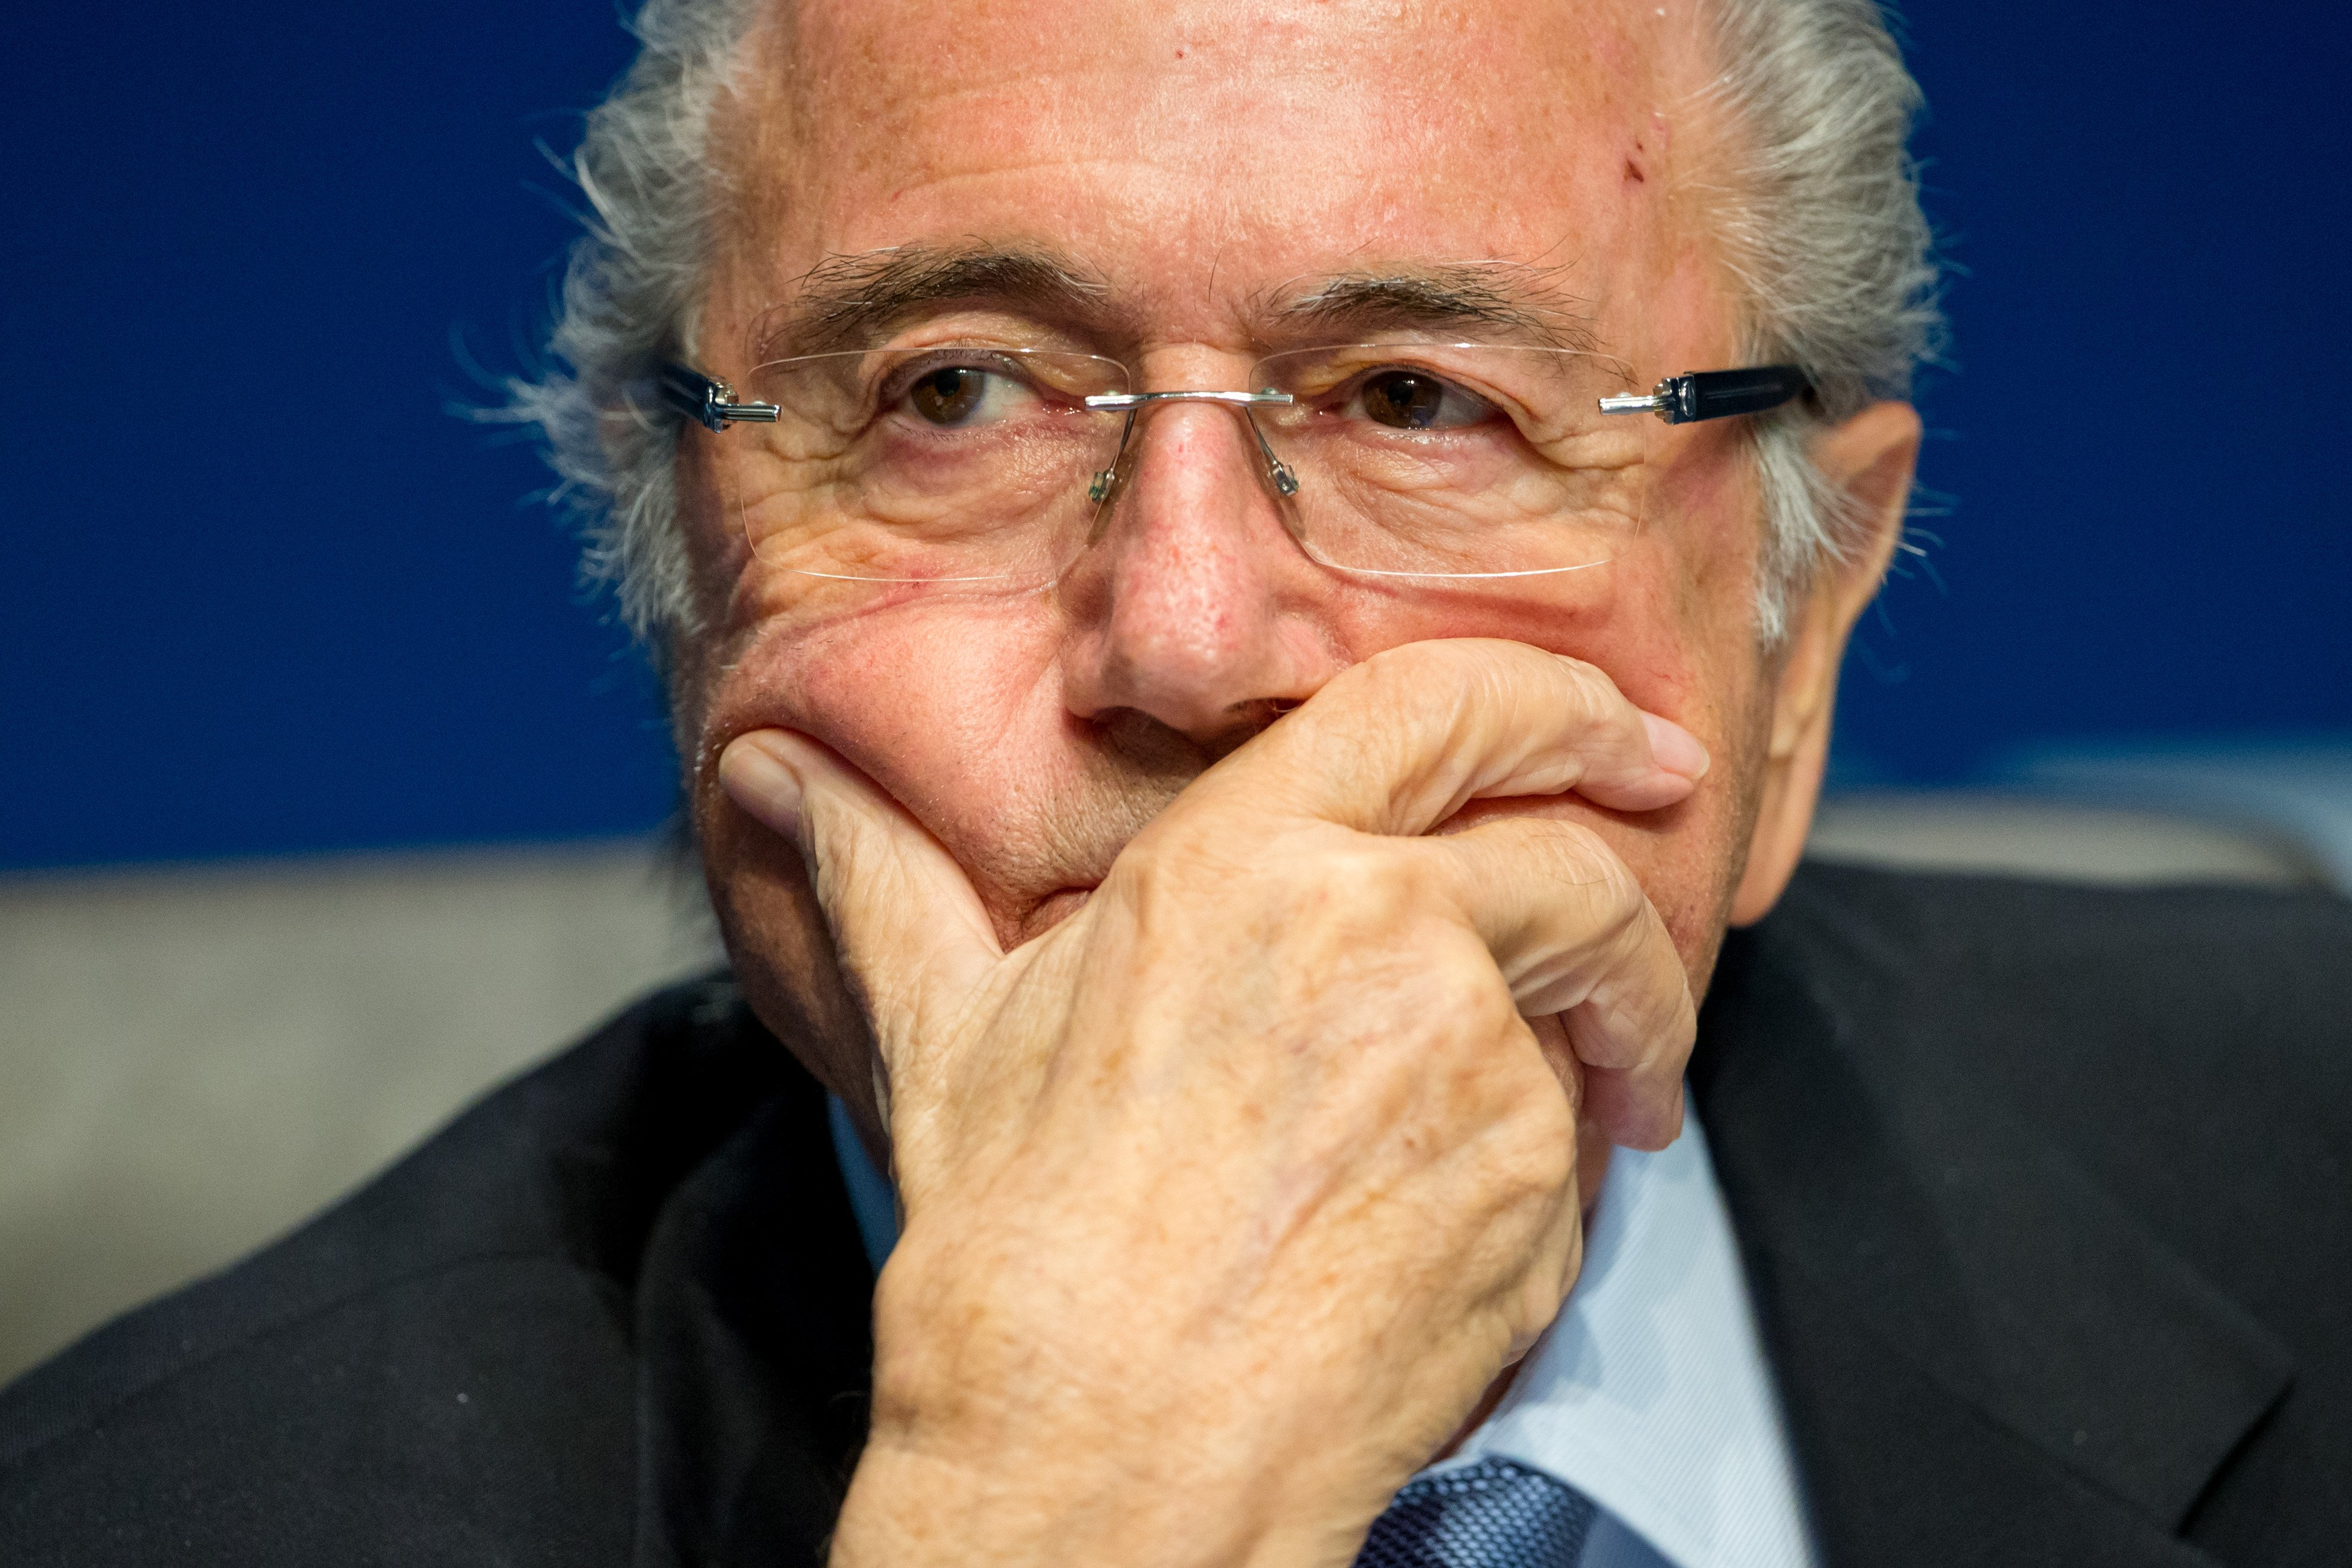 Sepp Blatter looks on during a press conference at the end of the FIFA Executive Comitee meeting at the FIFA headquarters in Zurich, Switzerland on March 20, 2015.